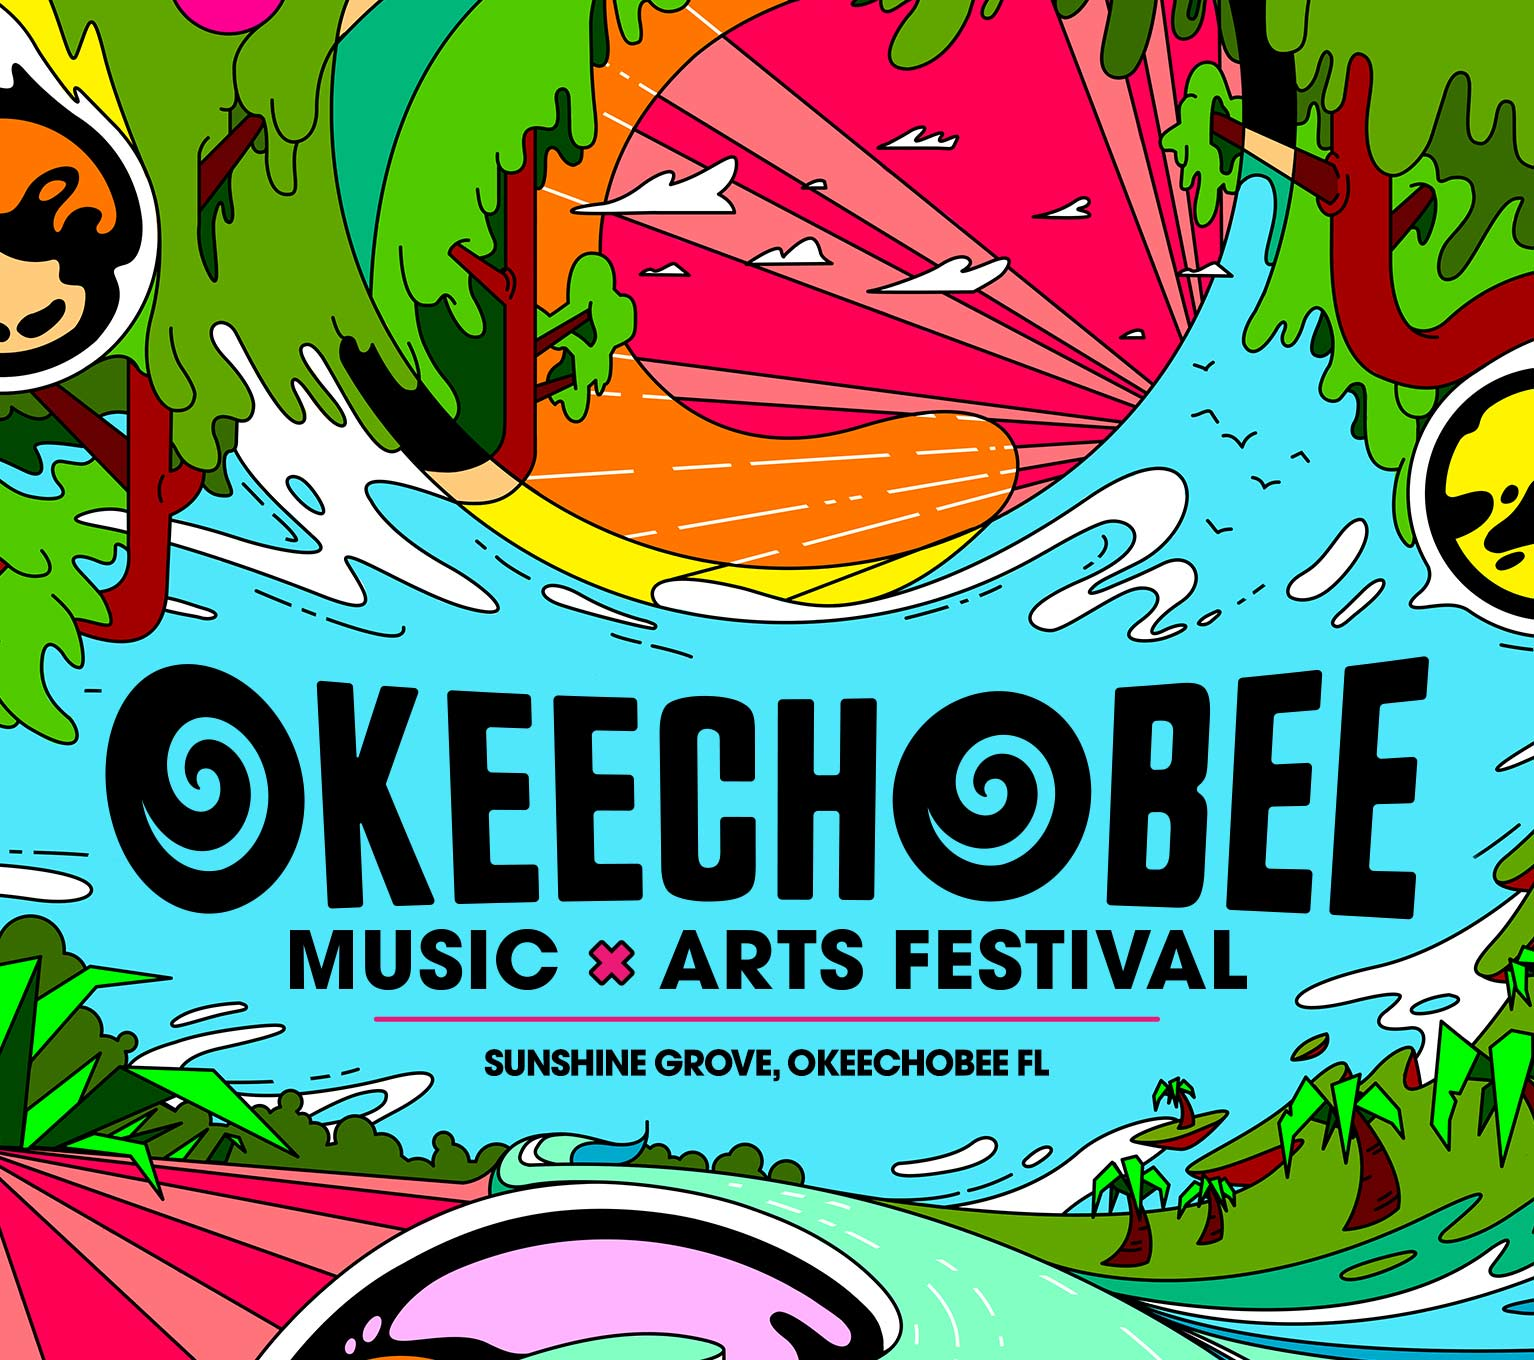 2020 Bonnaroo Music And Arts Festival Lineup.Okeechobee Music Arts Festival March 5 8 2020